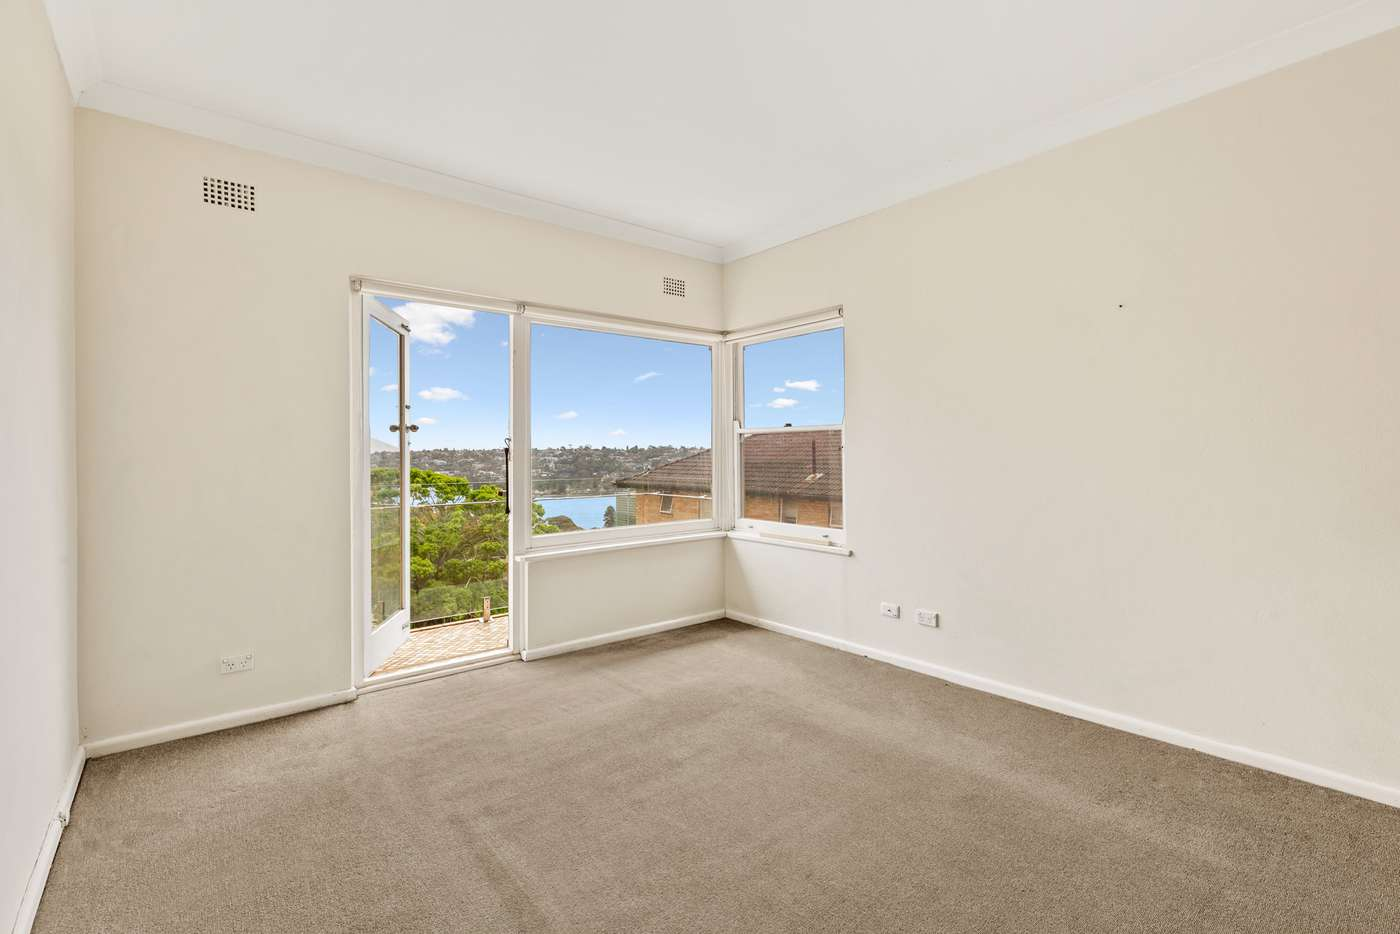 Main view of Homely apartment listing, 28/27 Warringah Road, Mosman NSW 2088